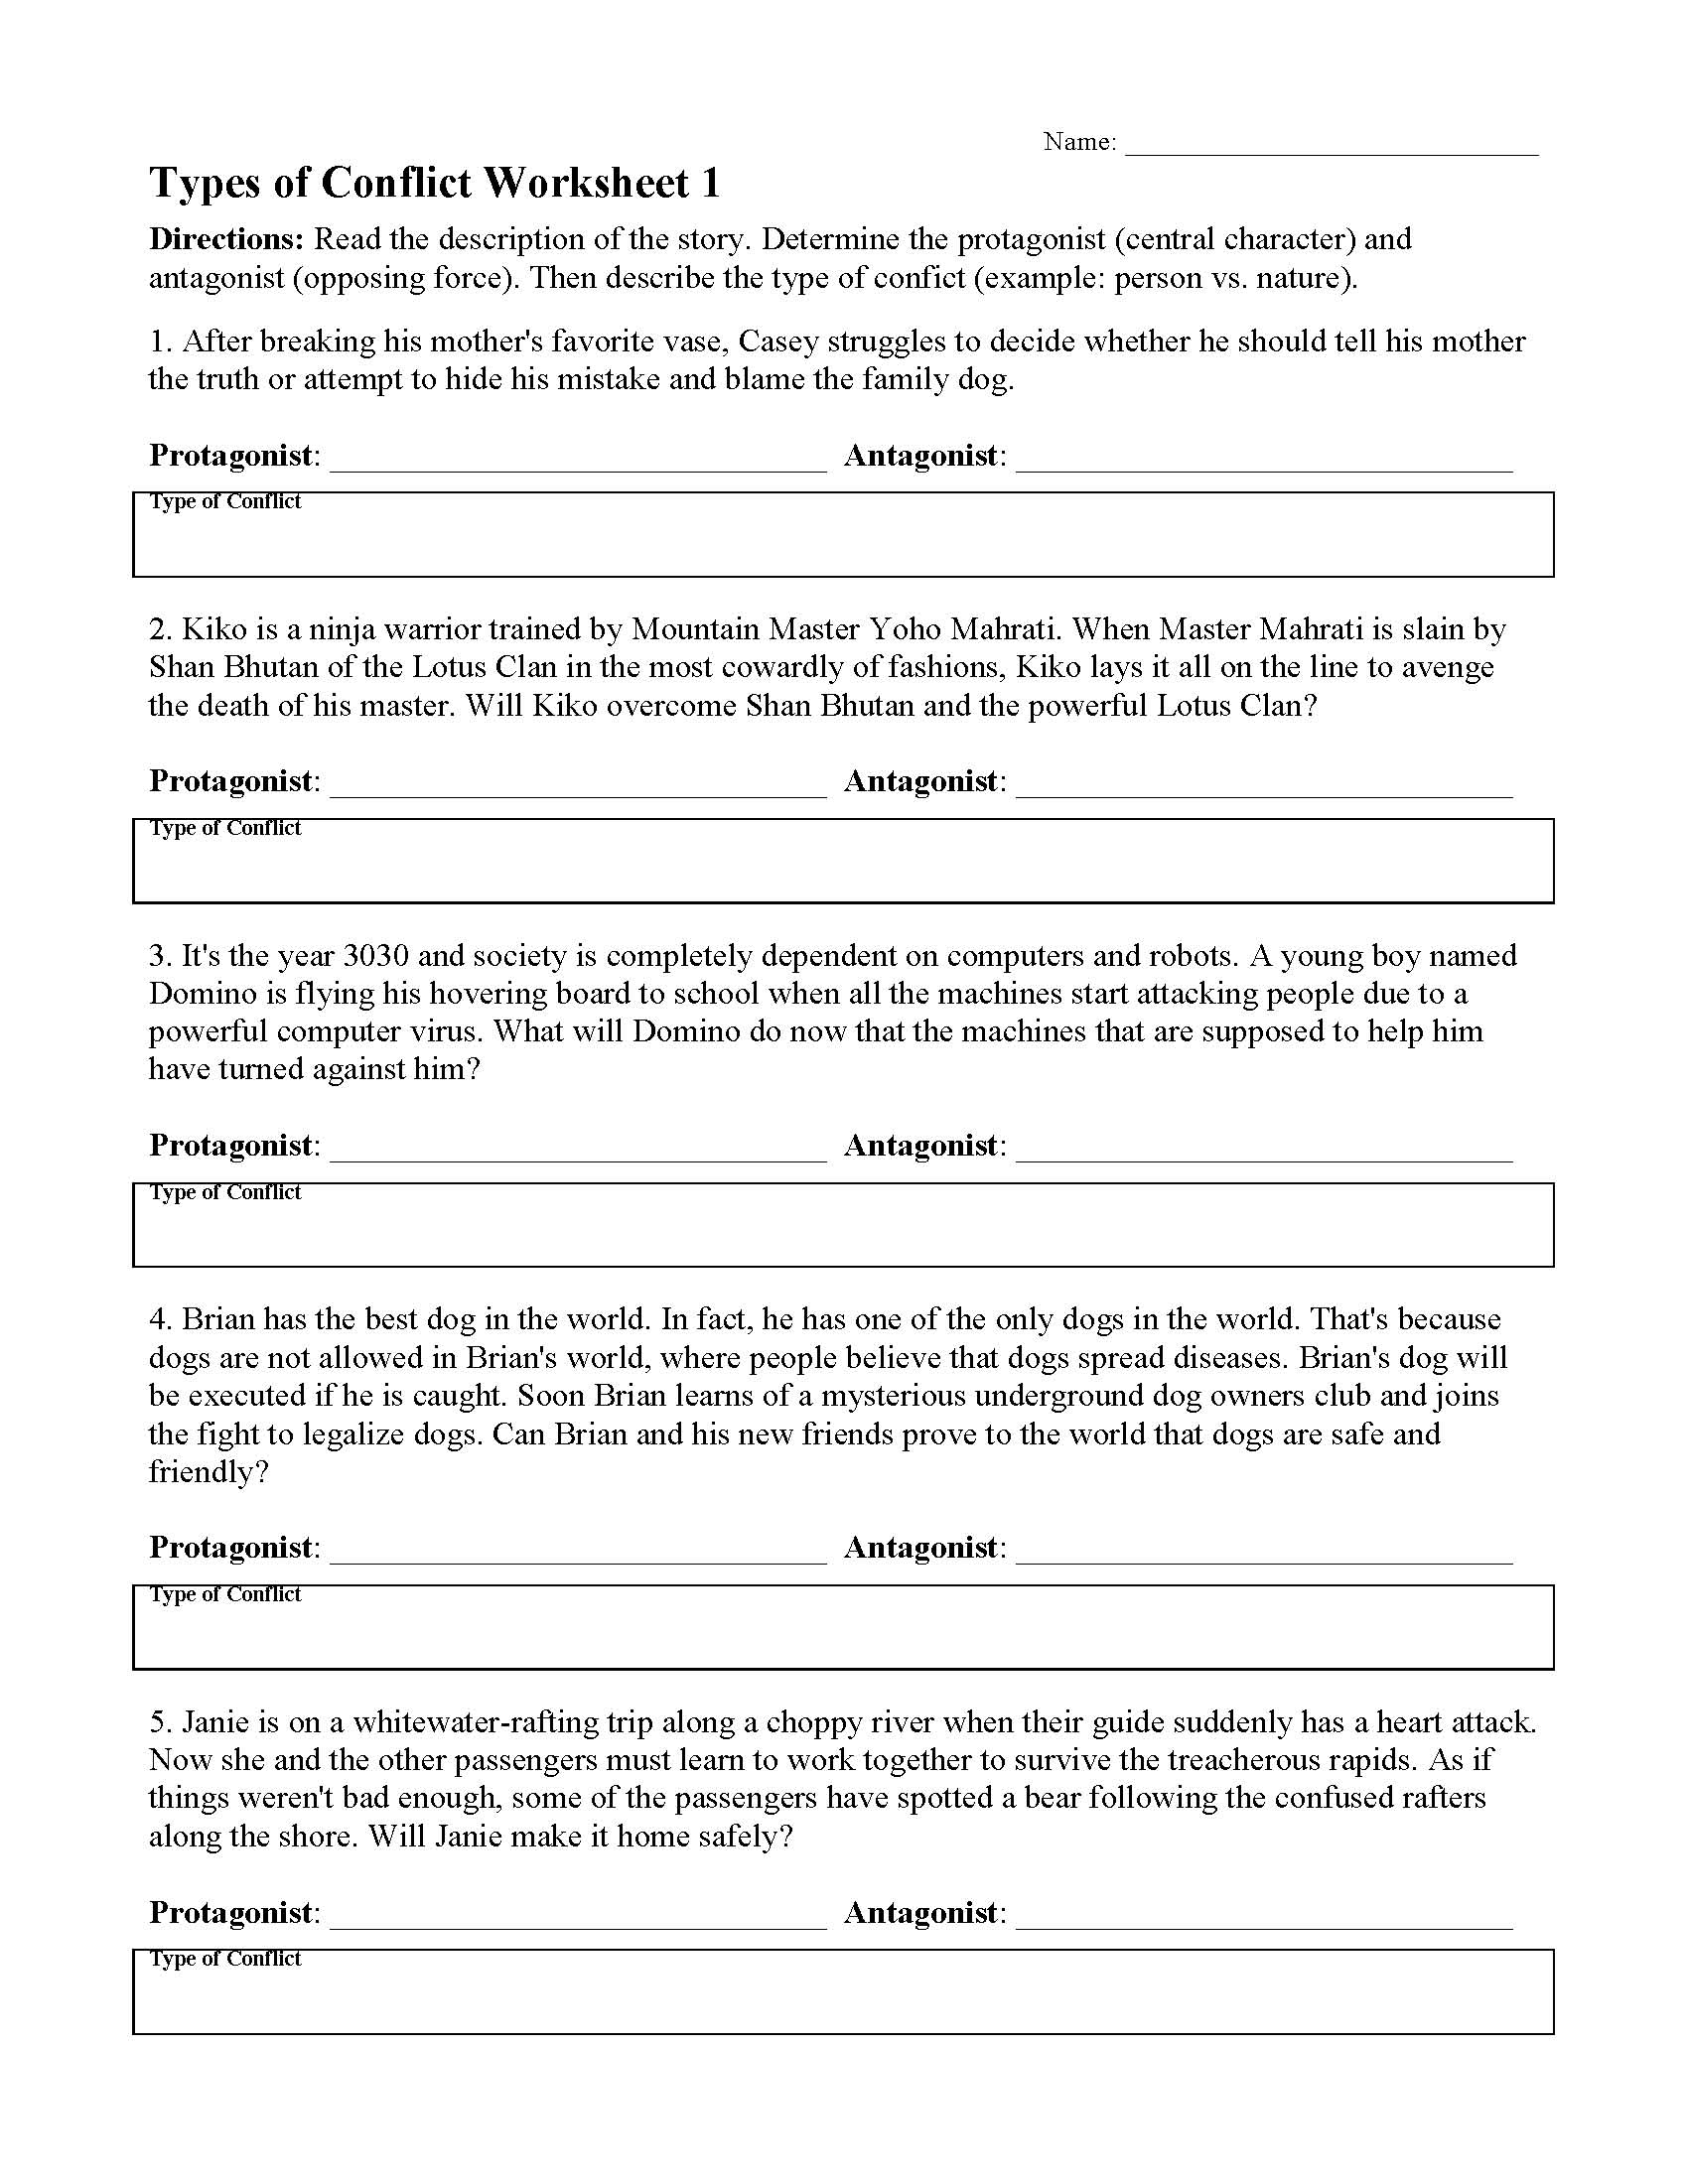 Character Types Worksheet 1